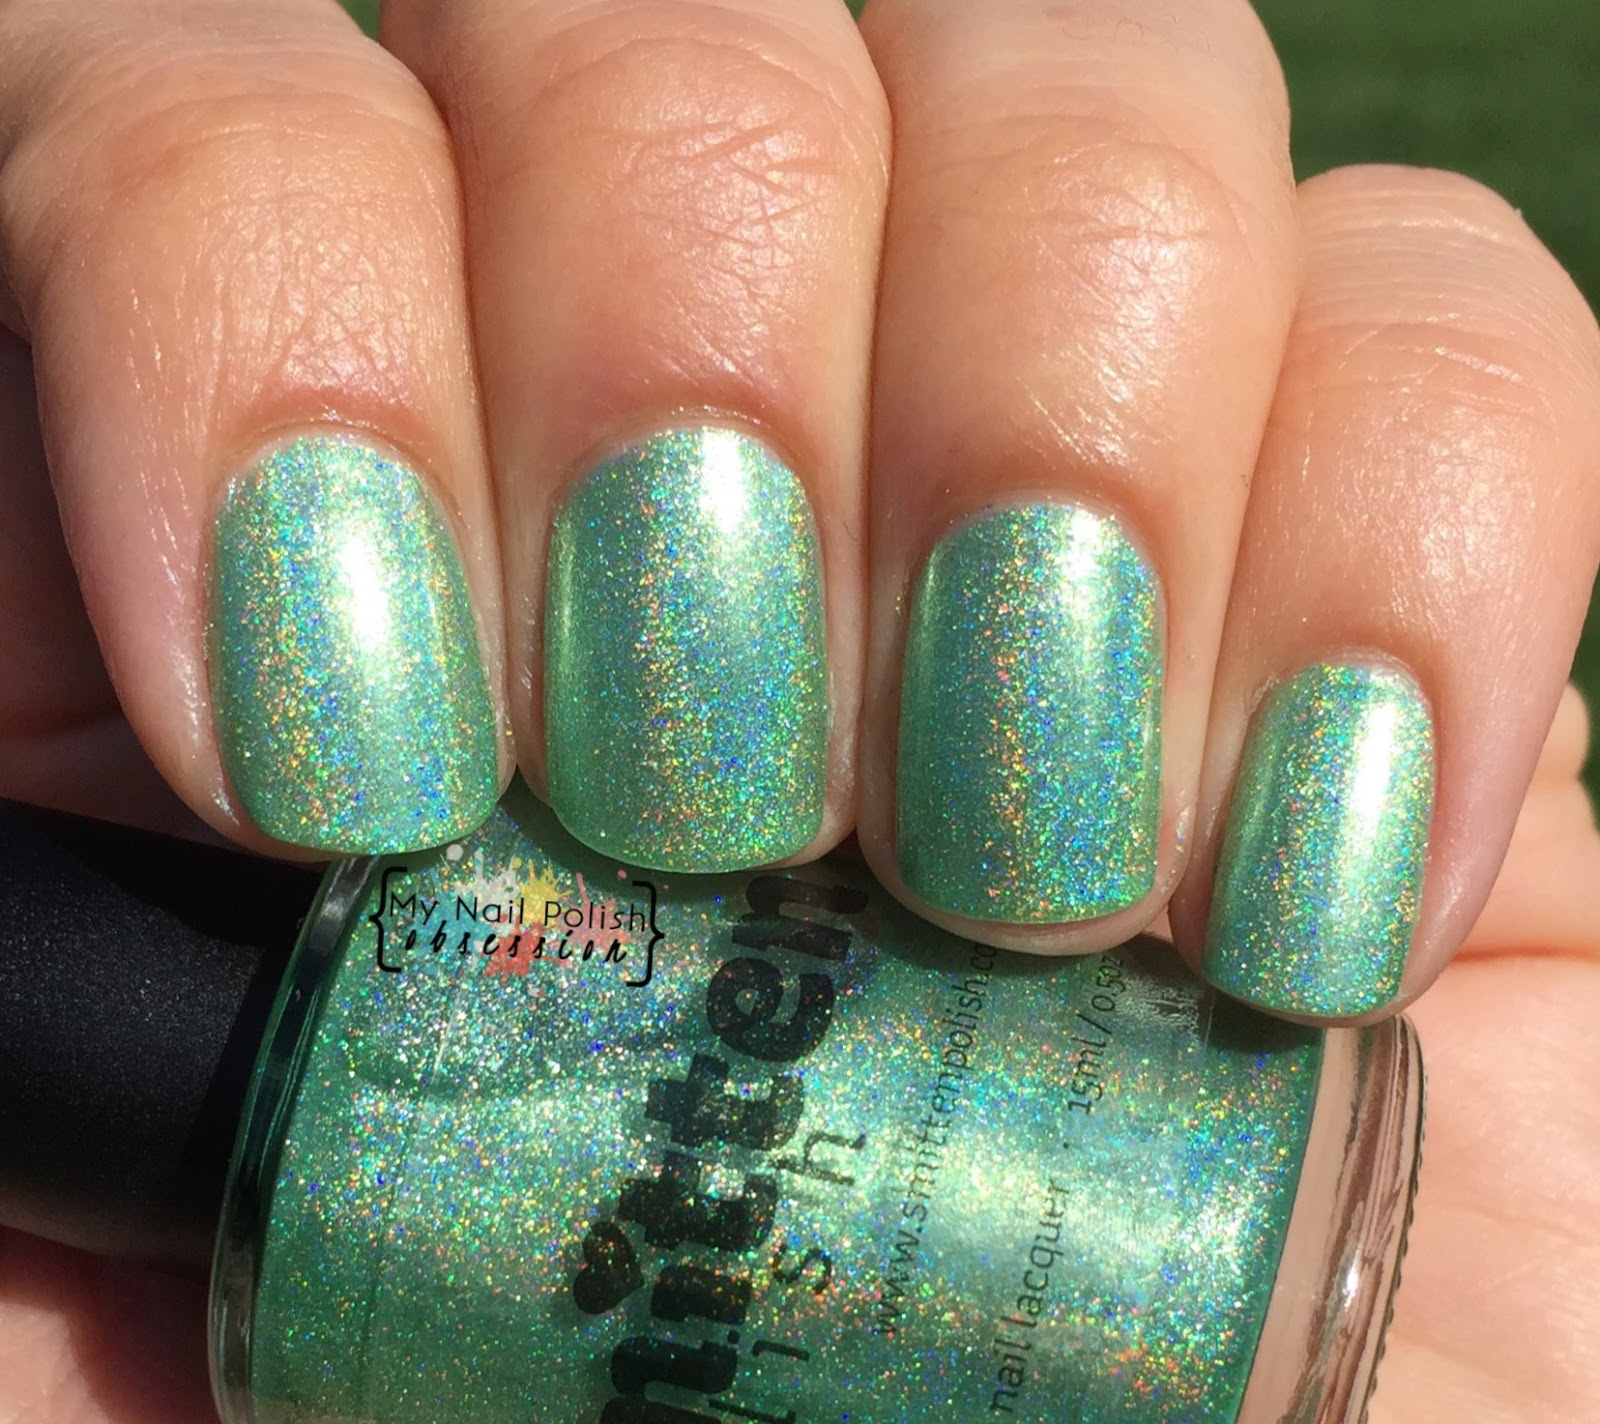 Smitten Polish A Shimmer of Hummingbirds